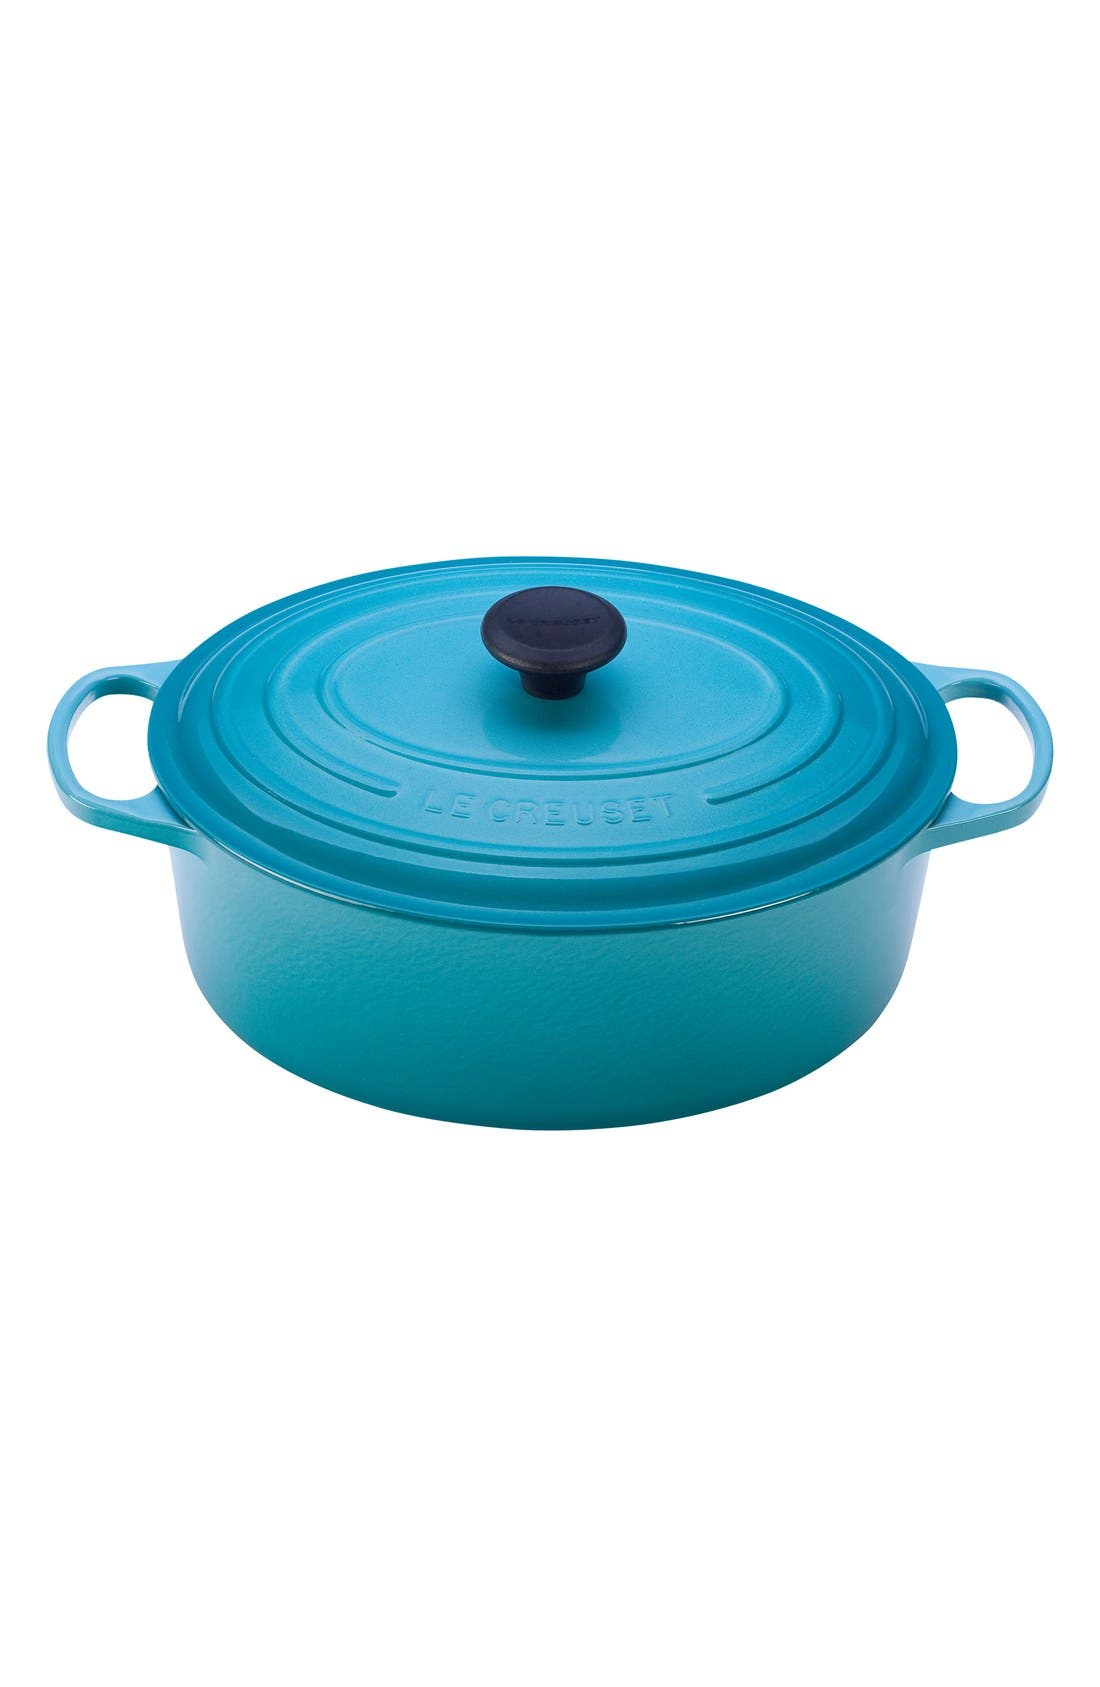 Signature 5 Quart Oval Enamel Cast Iron French/Dutch Oven,                         Main,                         color, CARIBBEAN